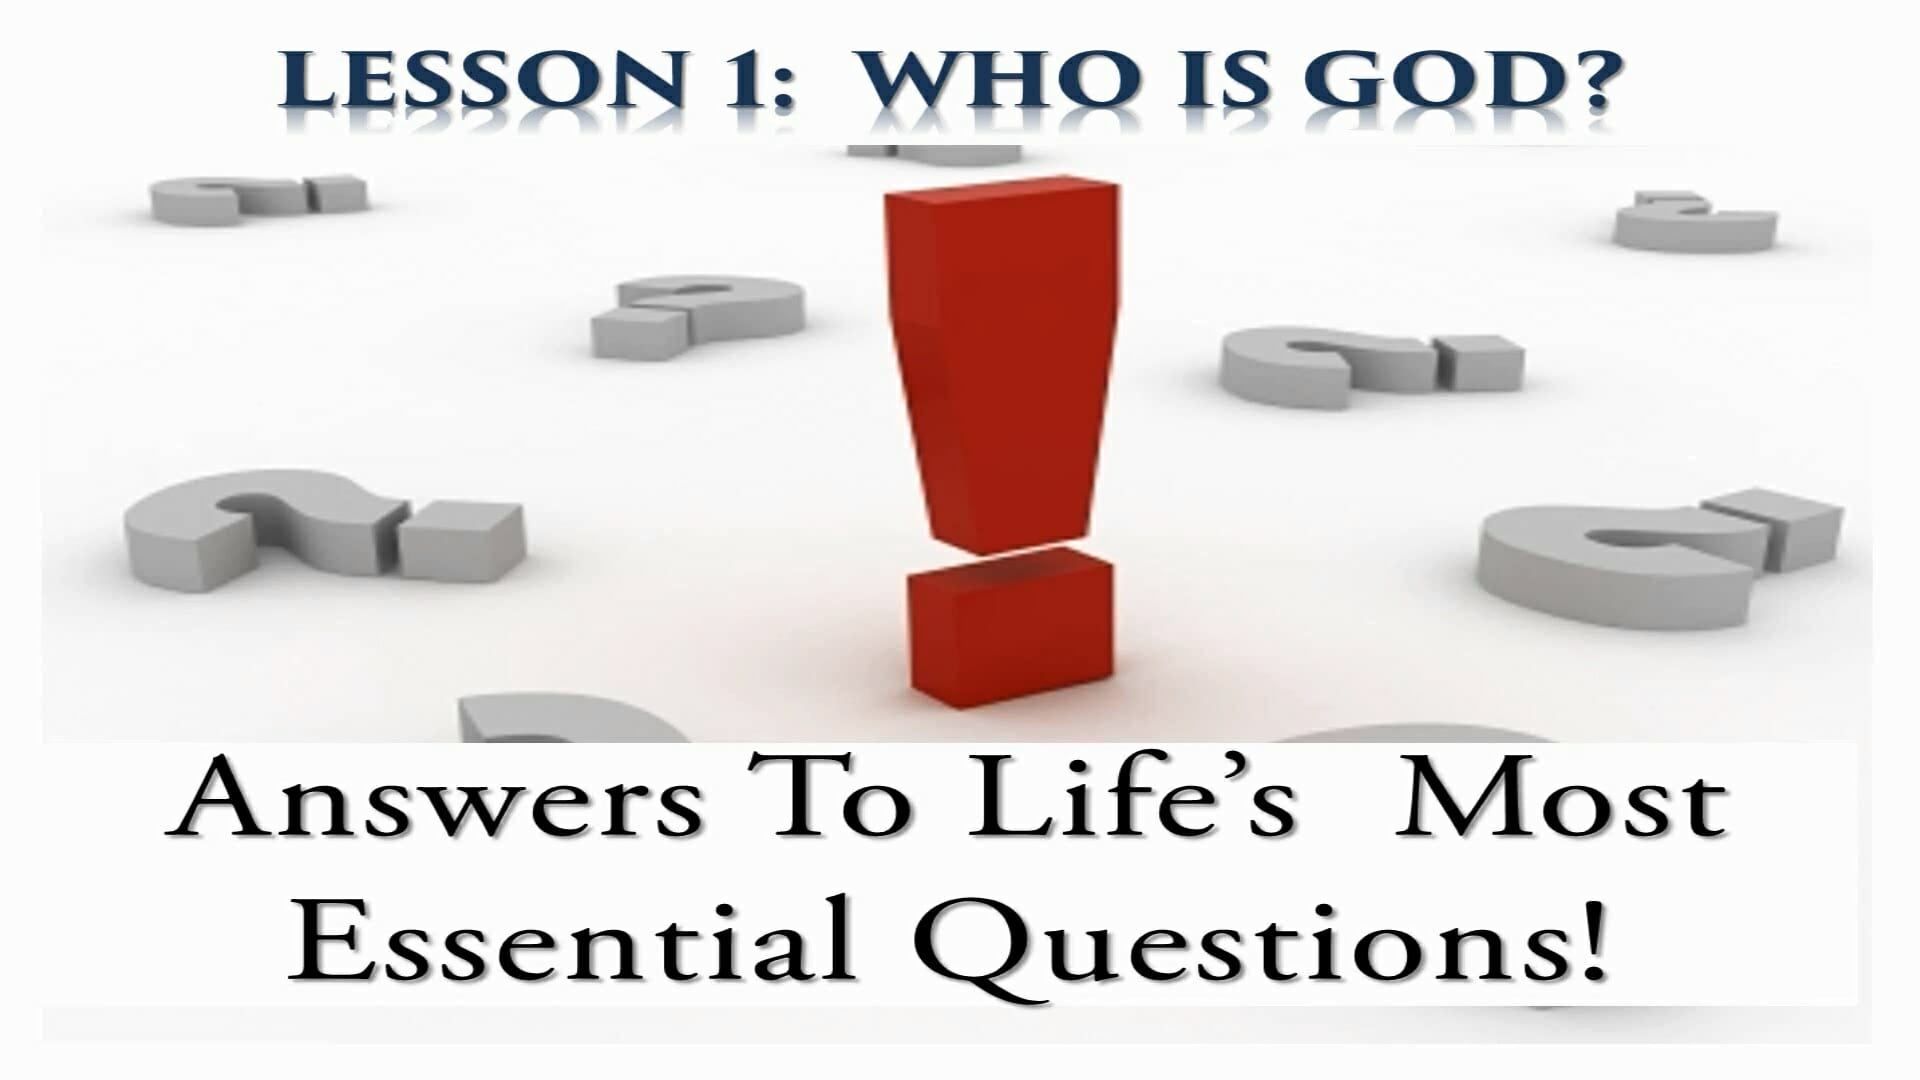 Answers To Life's Most Essential Questions (Lesson 1: Who Is God?)